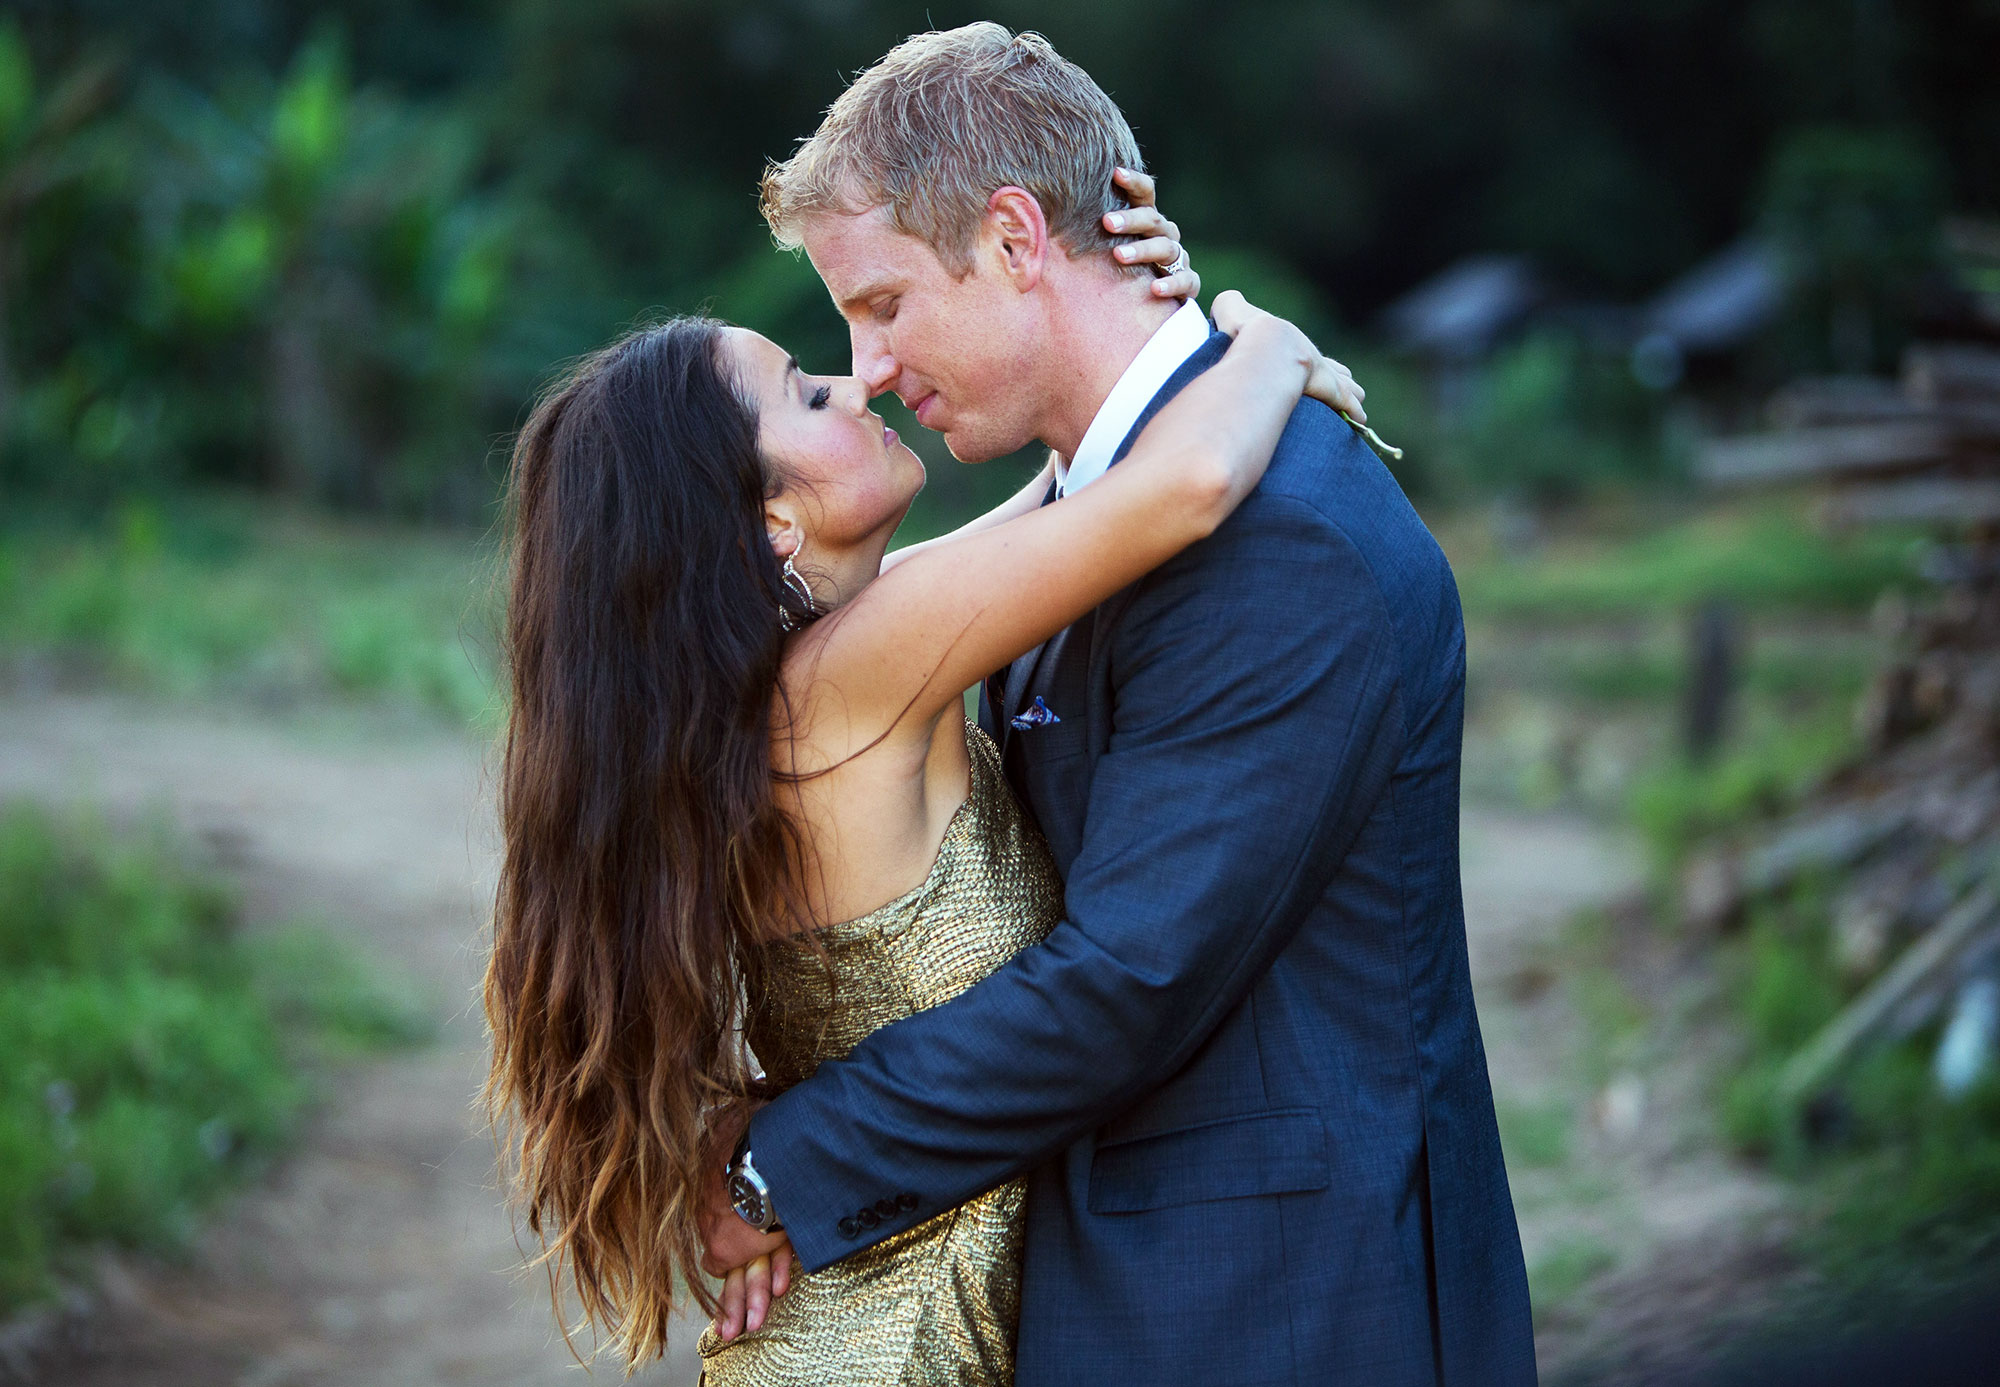 Catherine Lowe Sean Lowe Strong Marriage Tips The Bachelor 2013